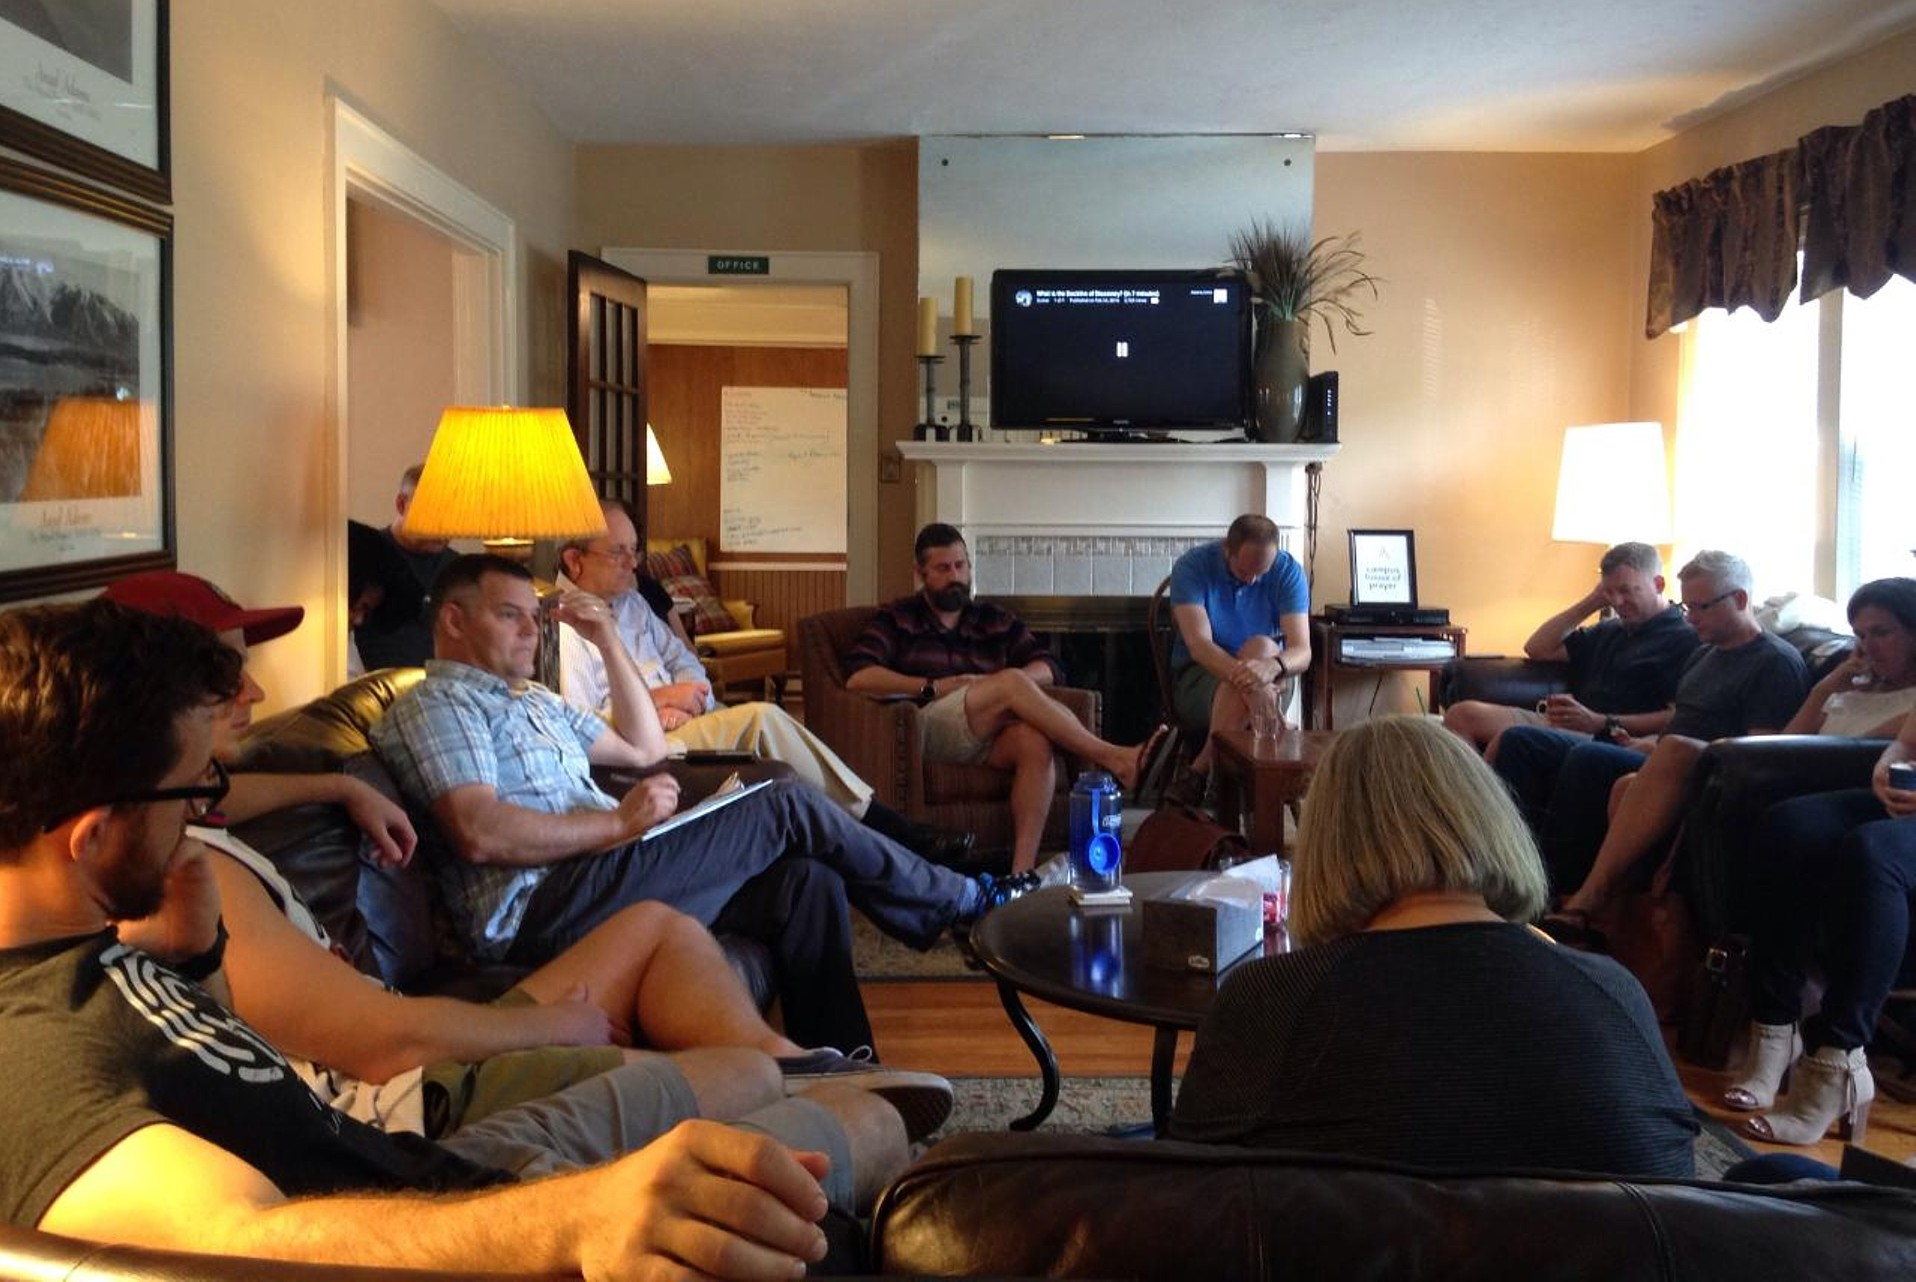 Convene - We convene ministry leaders and affinity groups. Events like our weekly Leader's Connect fosters trust across denominational lines, deepens our relationships, and creates a common desire to impact the communities we serve.Another way we convene is through affinity groups, like Military Christian Fellowship, that gathers student veterans and ROTC cadets twice a month at the CHOP to fellowship and encourage one another in their Christian faith.